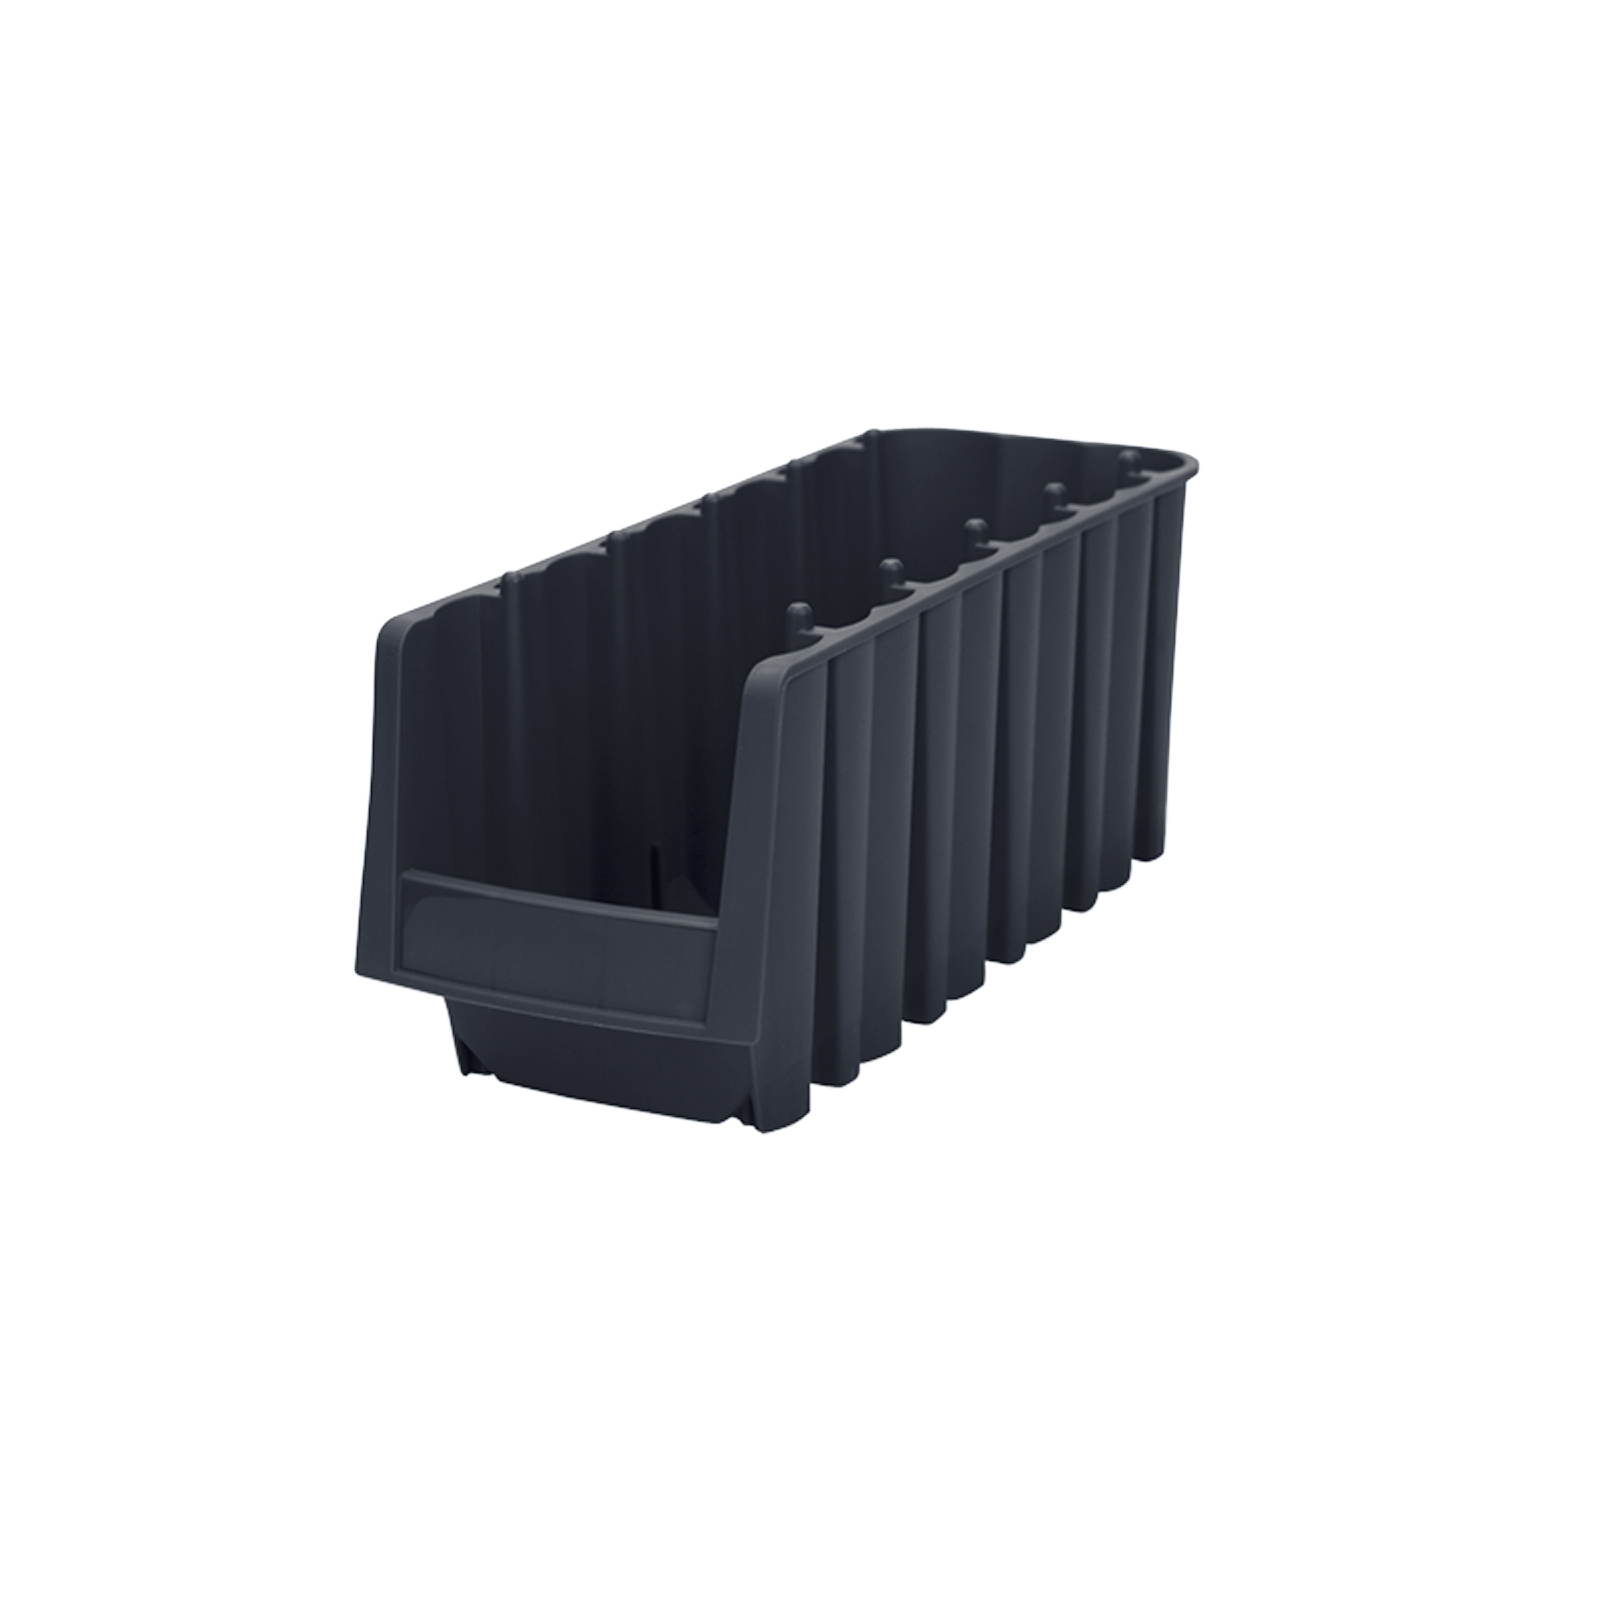 Economy Shelf Bin 11-7/8 x 8-3/8 x 5, Black (30718BLACK).  This item sold in carton quantities of 8.